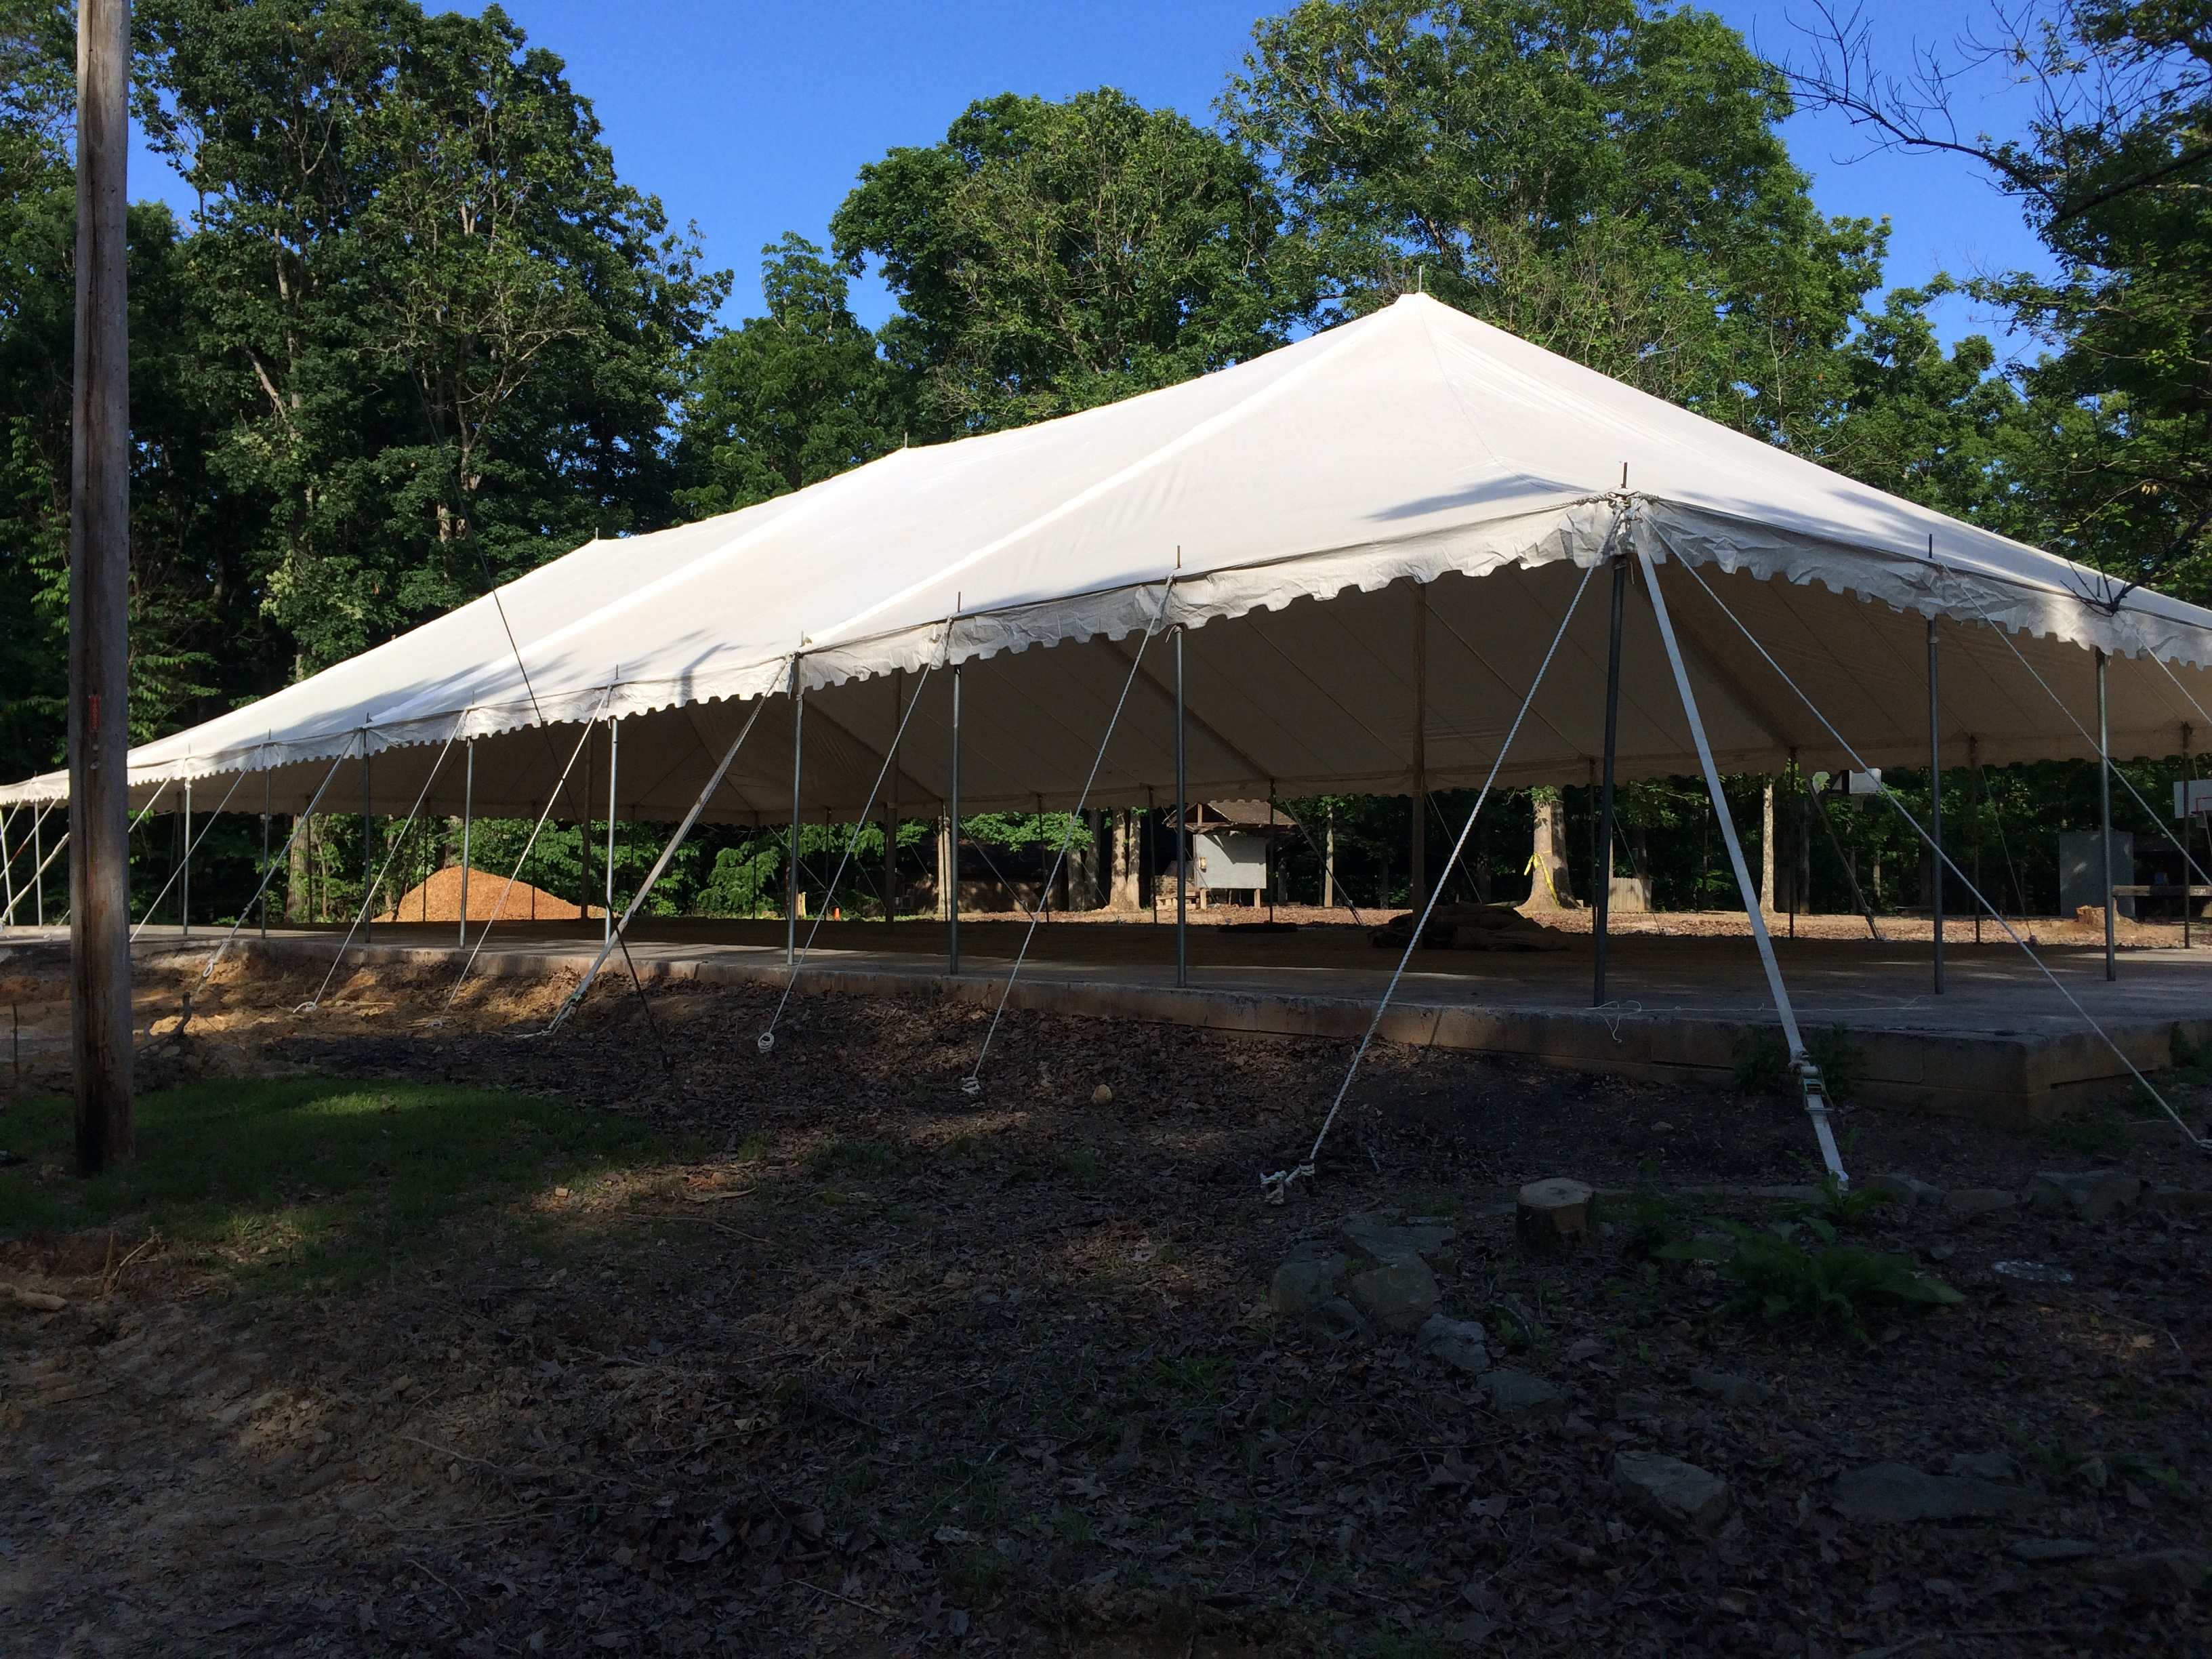 The Big Tent is Up! | Camp Leatherwood